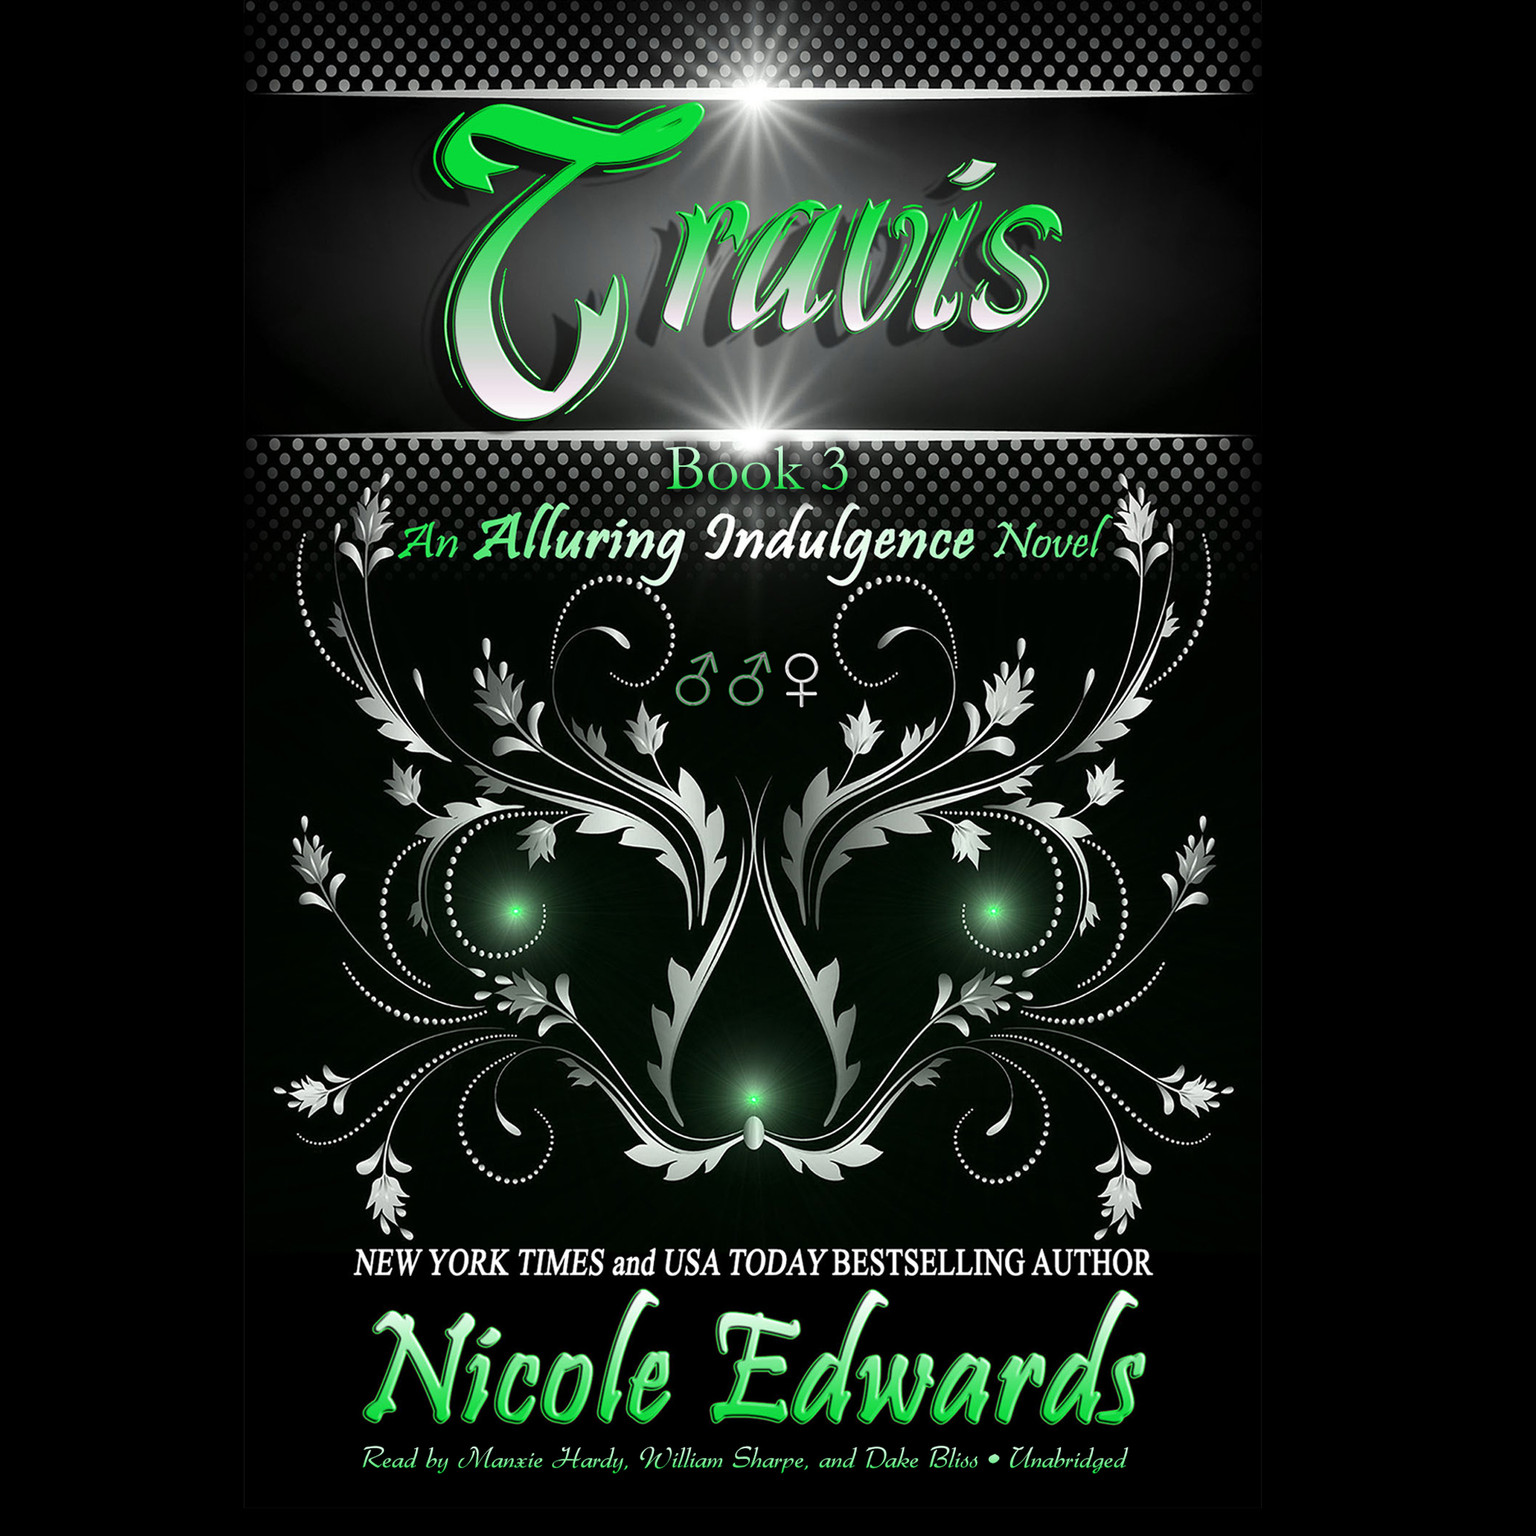 Printable Travis: An Alluring Indulgence Novel, Book 3 Audiobook Cover Art